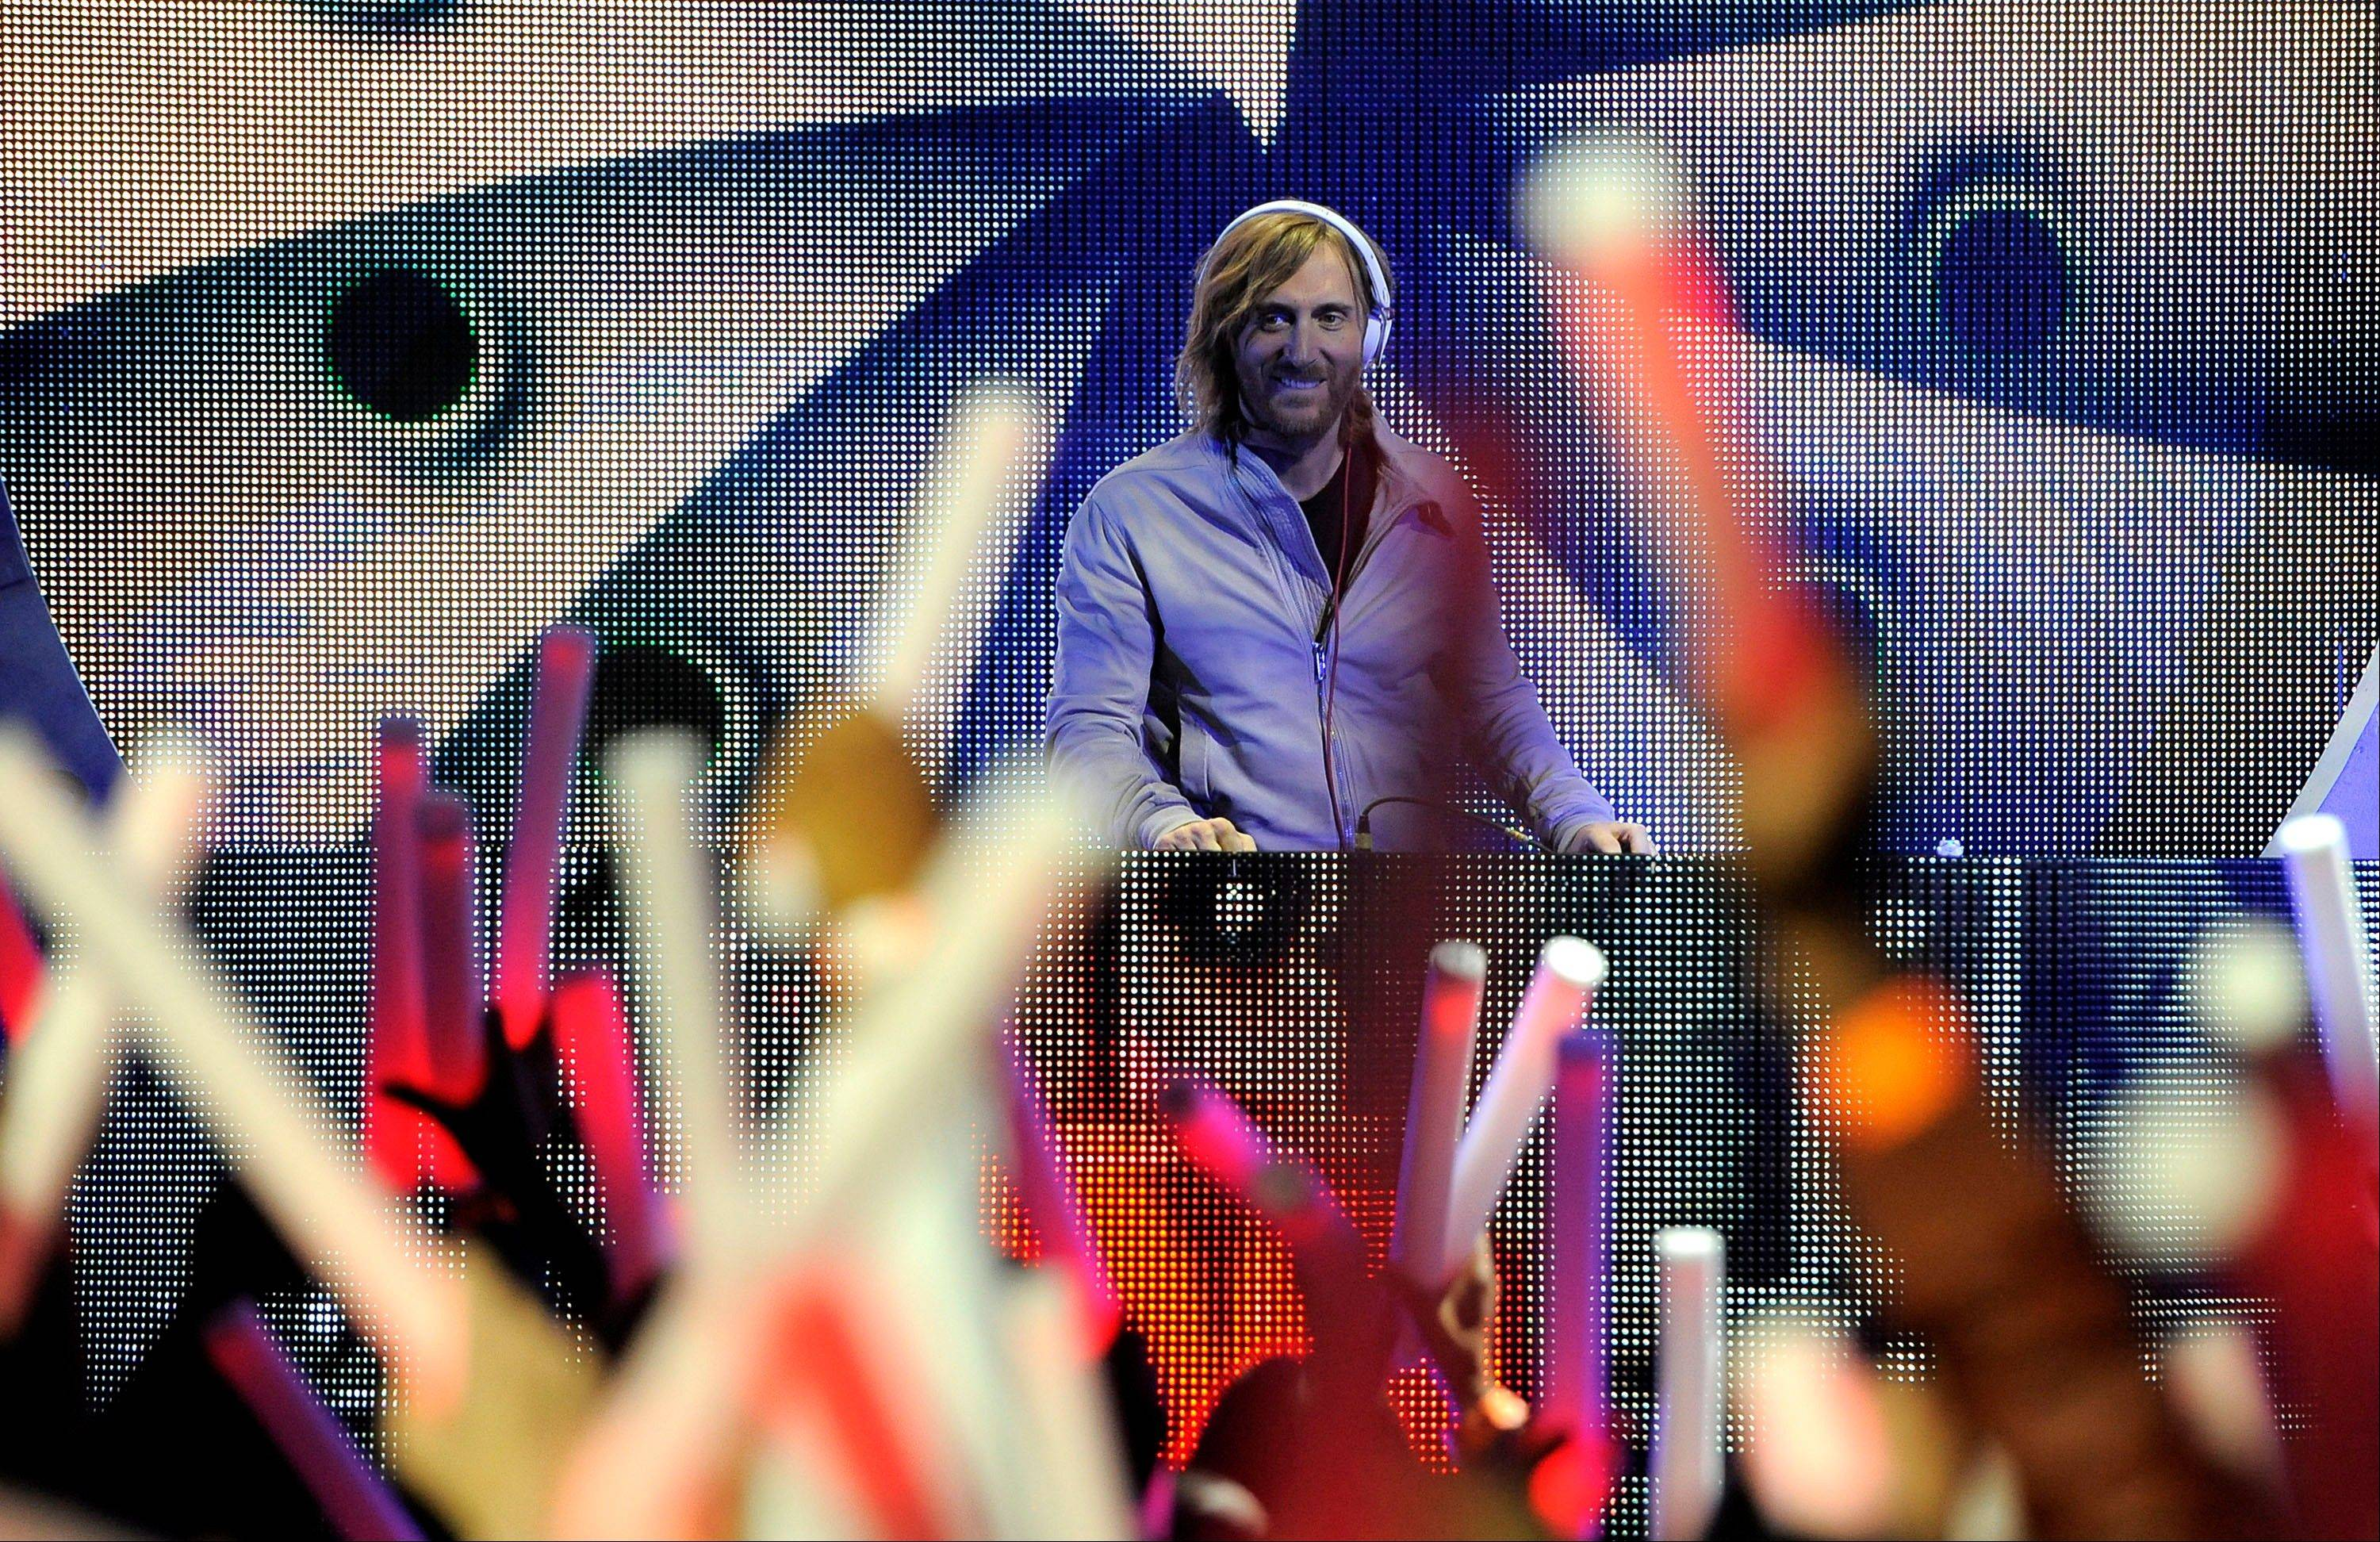 David Guetta performs Sunday at the 54th annual Grammy Awards in Los Angeles.